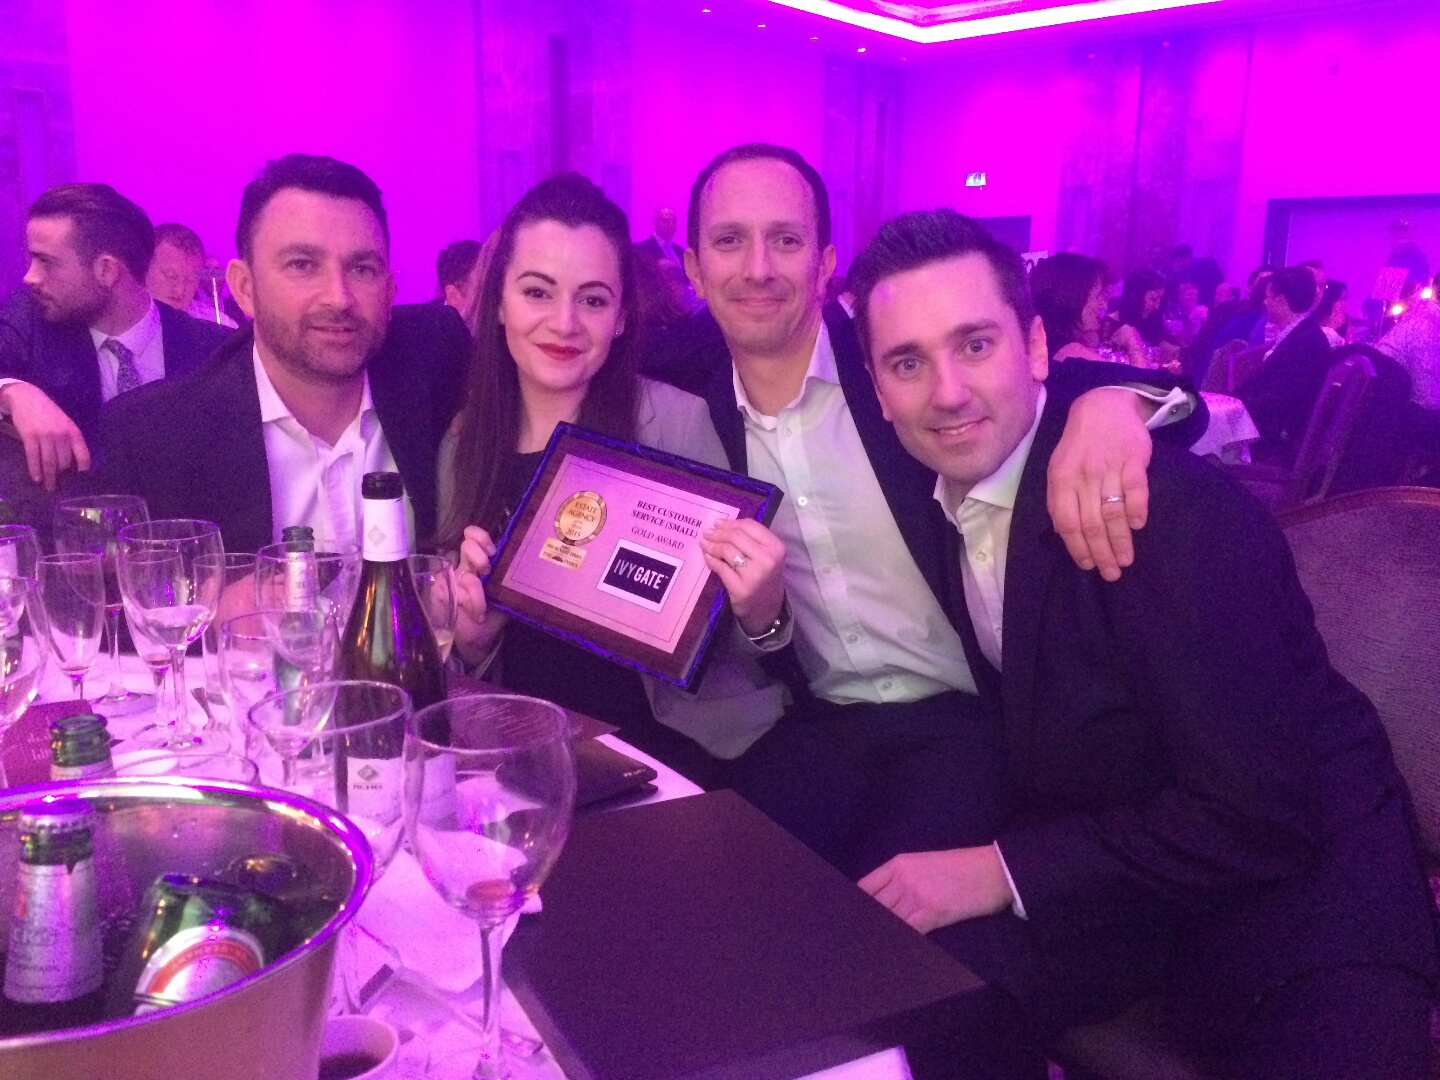 Ivy Gate win GOLD at the Estate Agent of the year awards 2015.